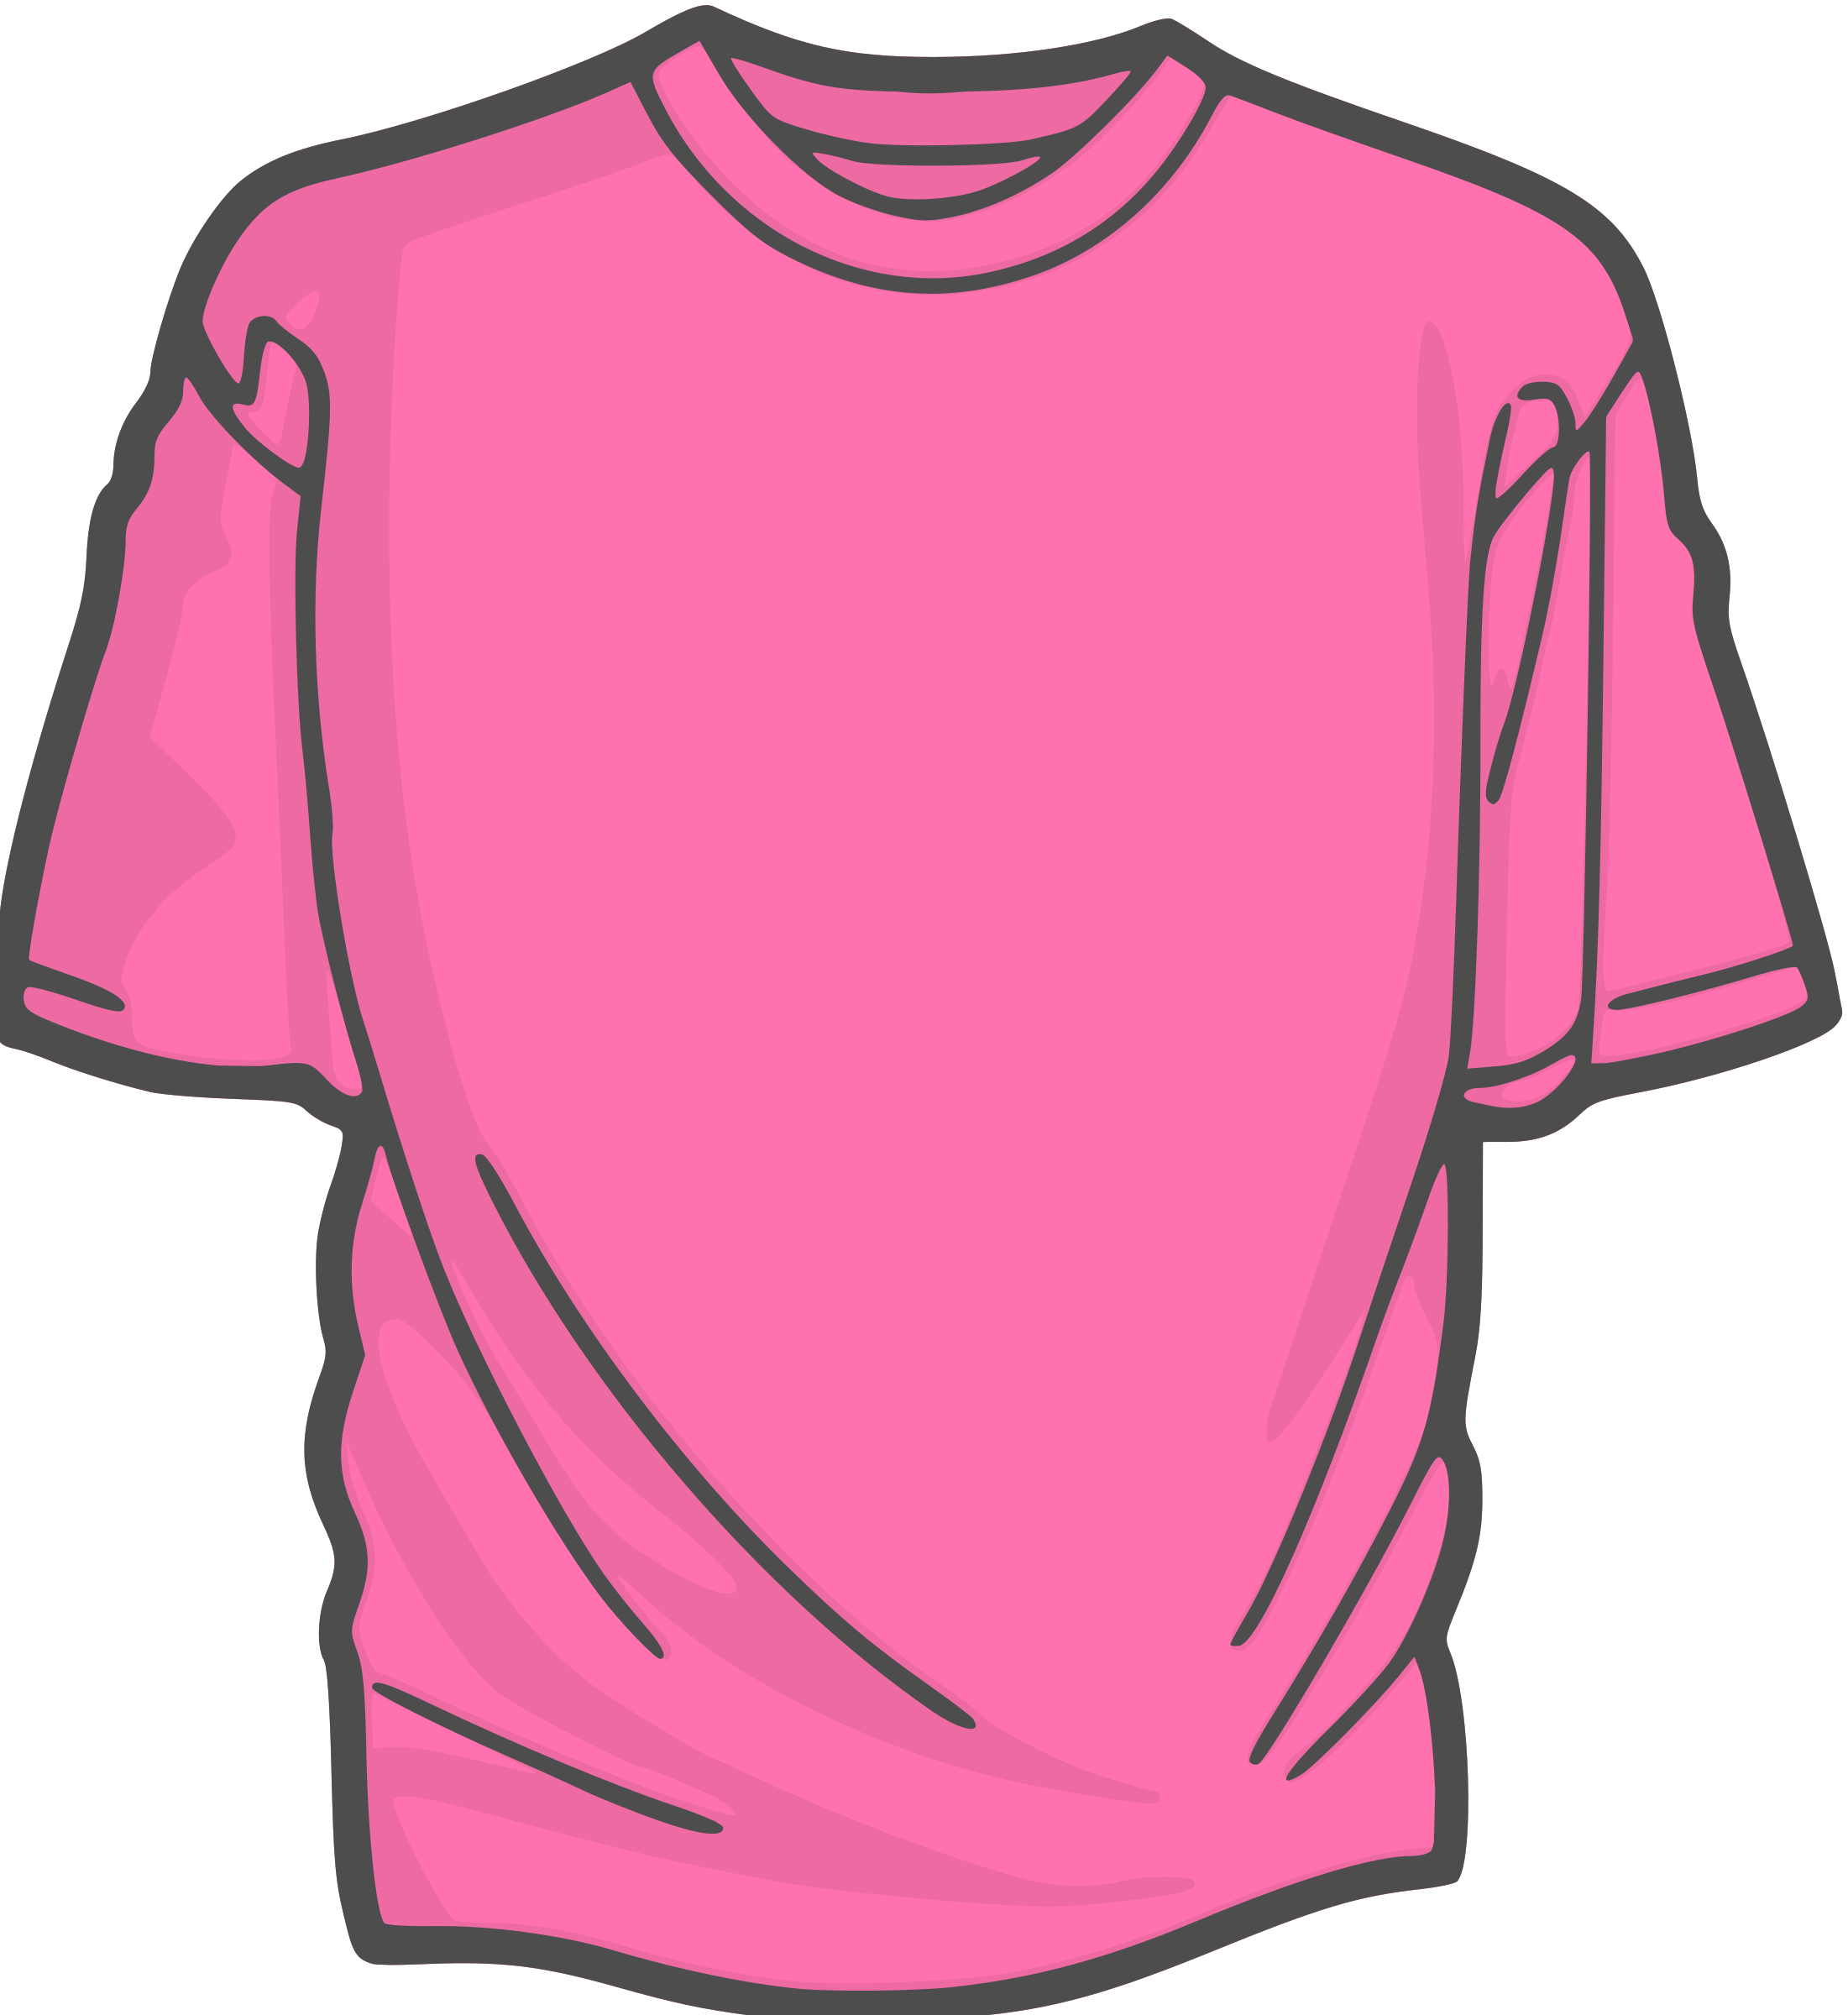 DigitaLink-Blank-T-Shirt-2 by youngheart80